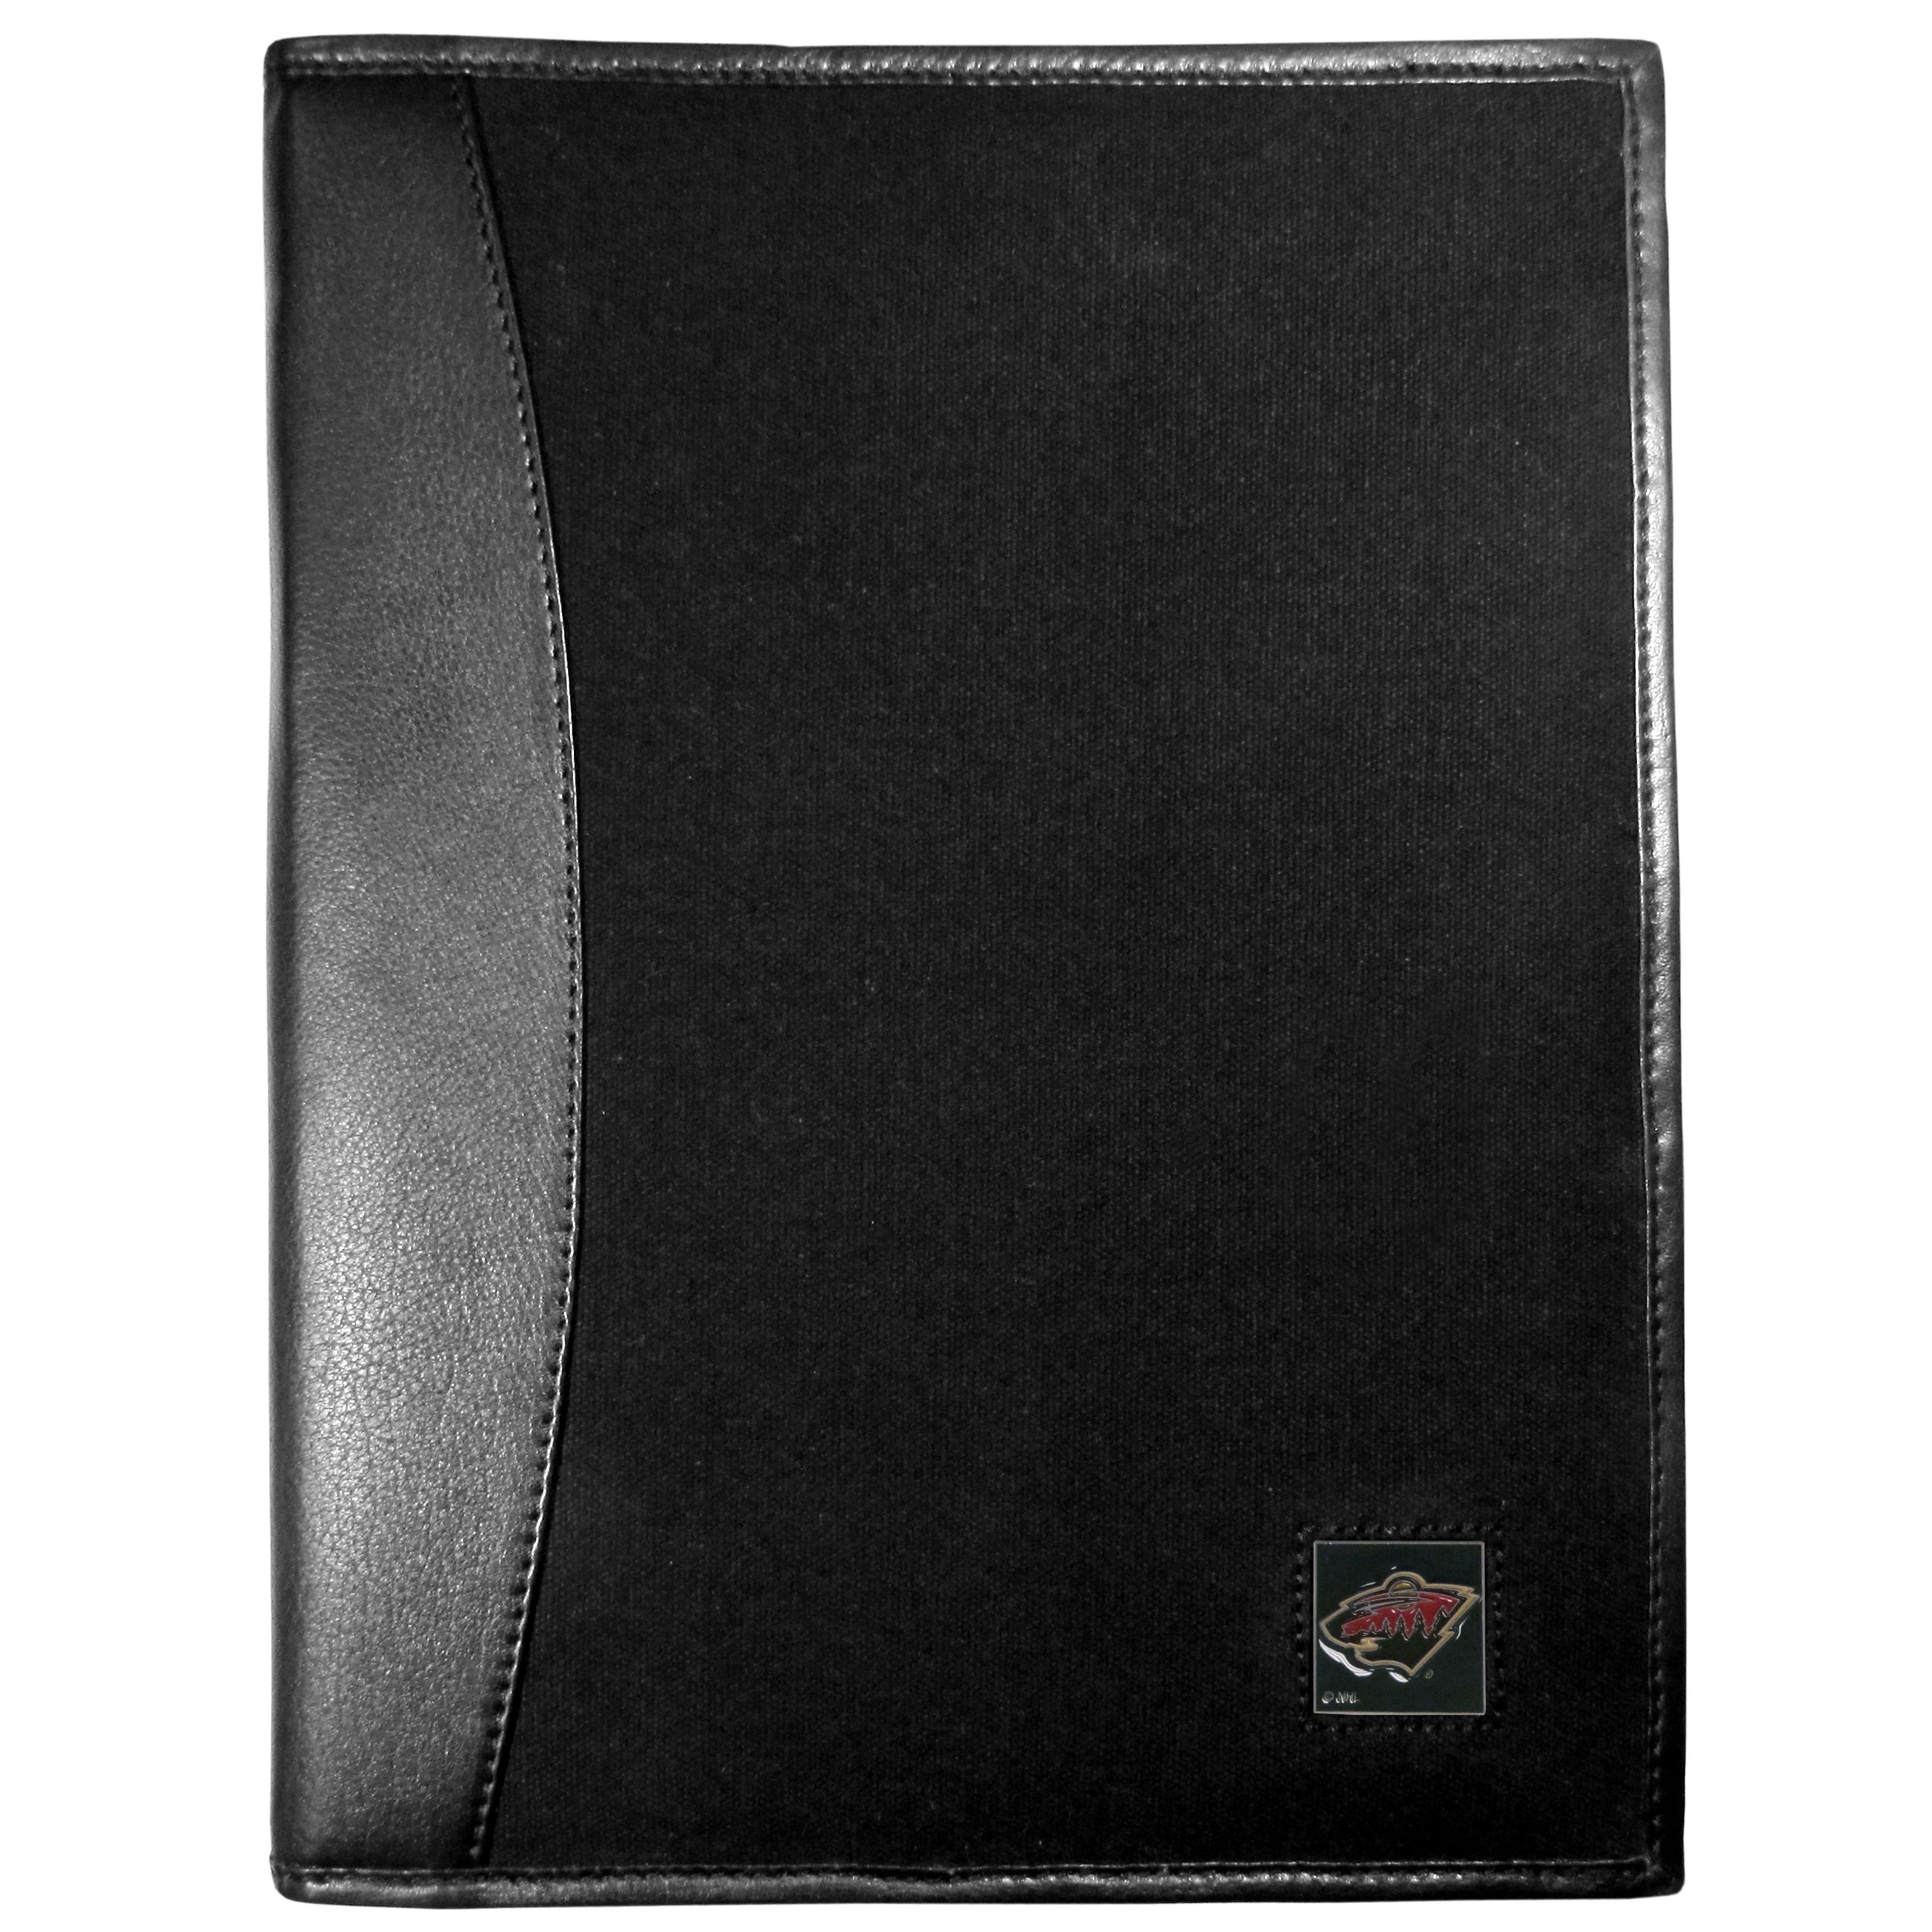 Minnesota Wild® Leather and Canvas Padfolio - Our leather and canvas padfolio perfectly blends form and function. The attractive portfolio is bound in fine grain leather with an attractive canvas finish and the interior is a soft nylon. This high quality business accessory also features a fully cast metal Minnesota Wild® emblem that is subtly set in the corner of the organizer. It is packed with features like 6 card slots for badges, business cards, hotel keys or credit cards and ID with a large pocket for loose papers and a writing tablet slot making it a must-have for the professional on the go.